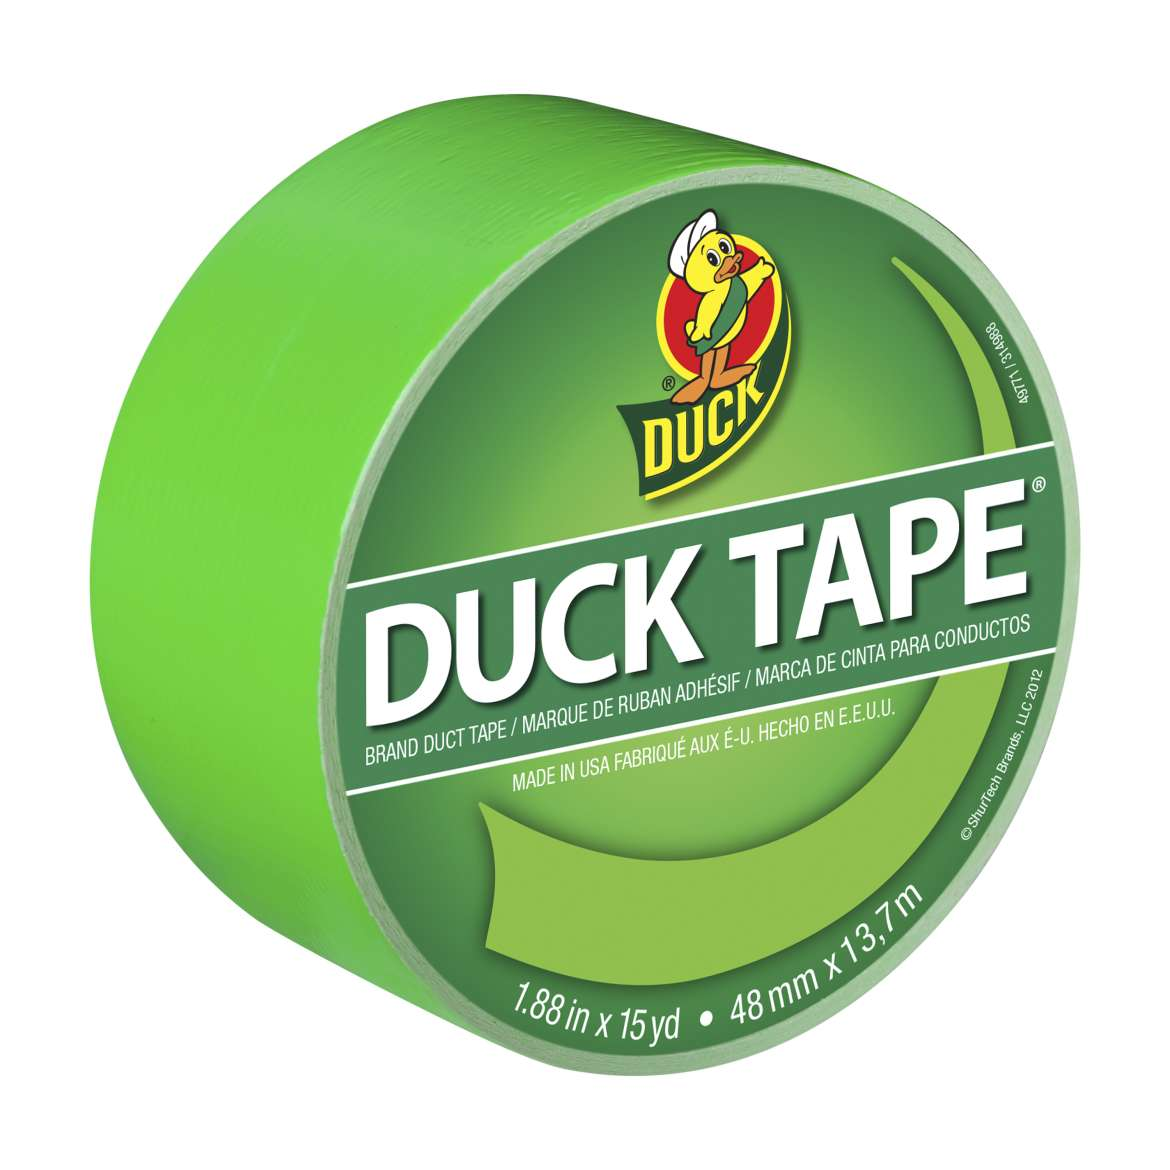 Color Duck Tape Brand Duct Tape - Neon Green, 1.88 in. x 15 yd.